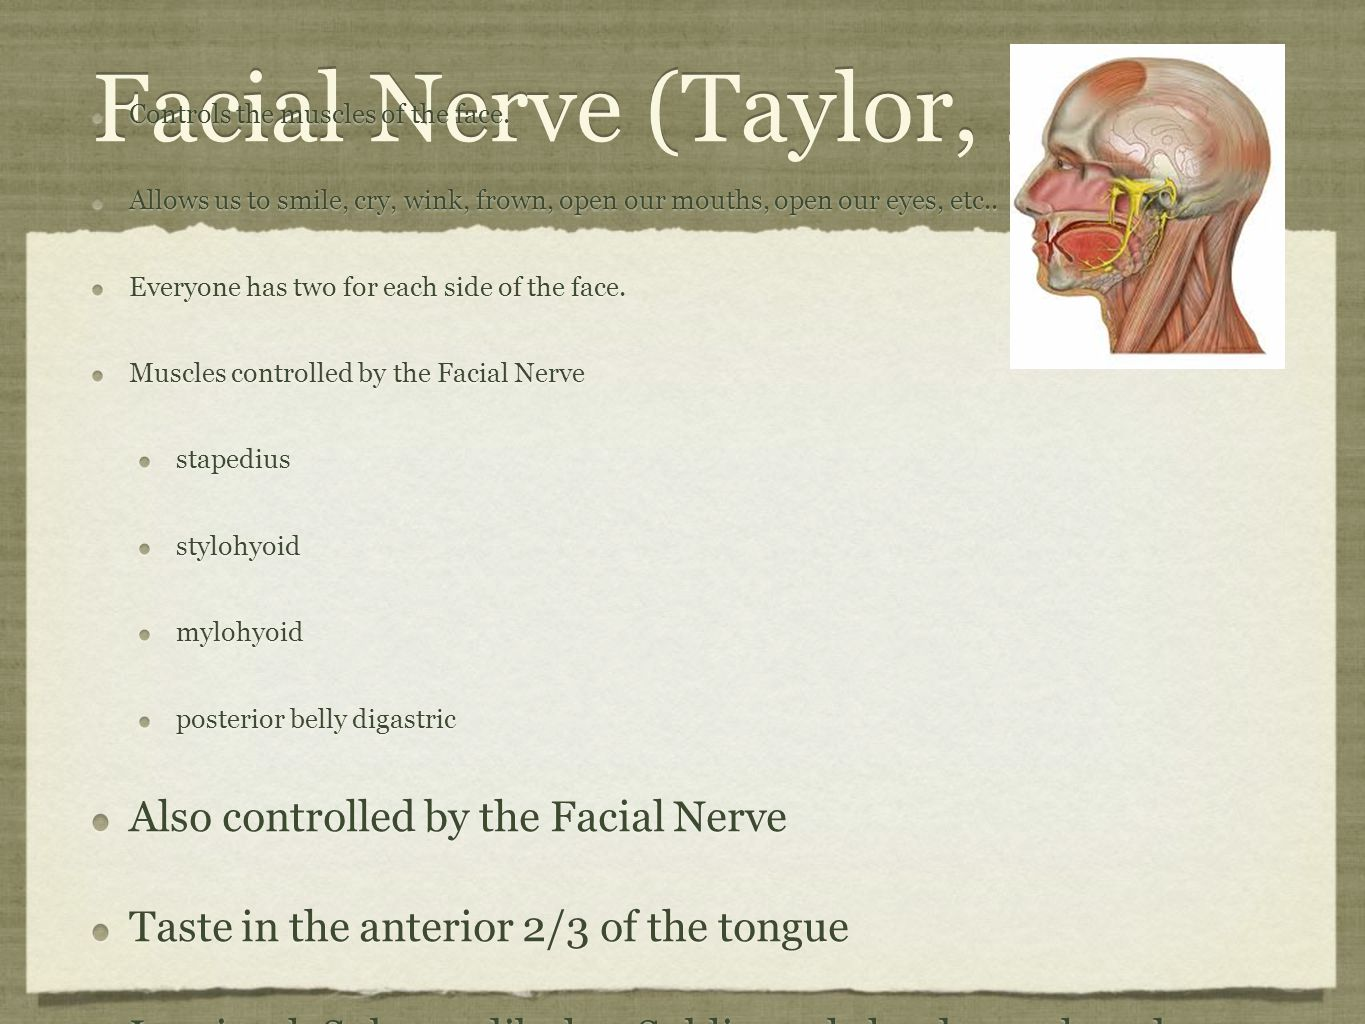 Facial Nerve (Taylor, 2012) Also controlled by the Facial Nerve